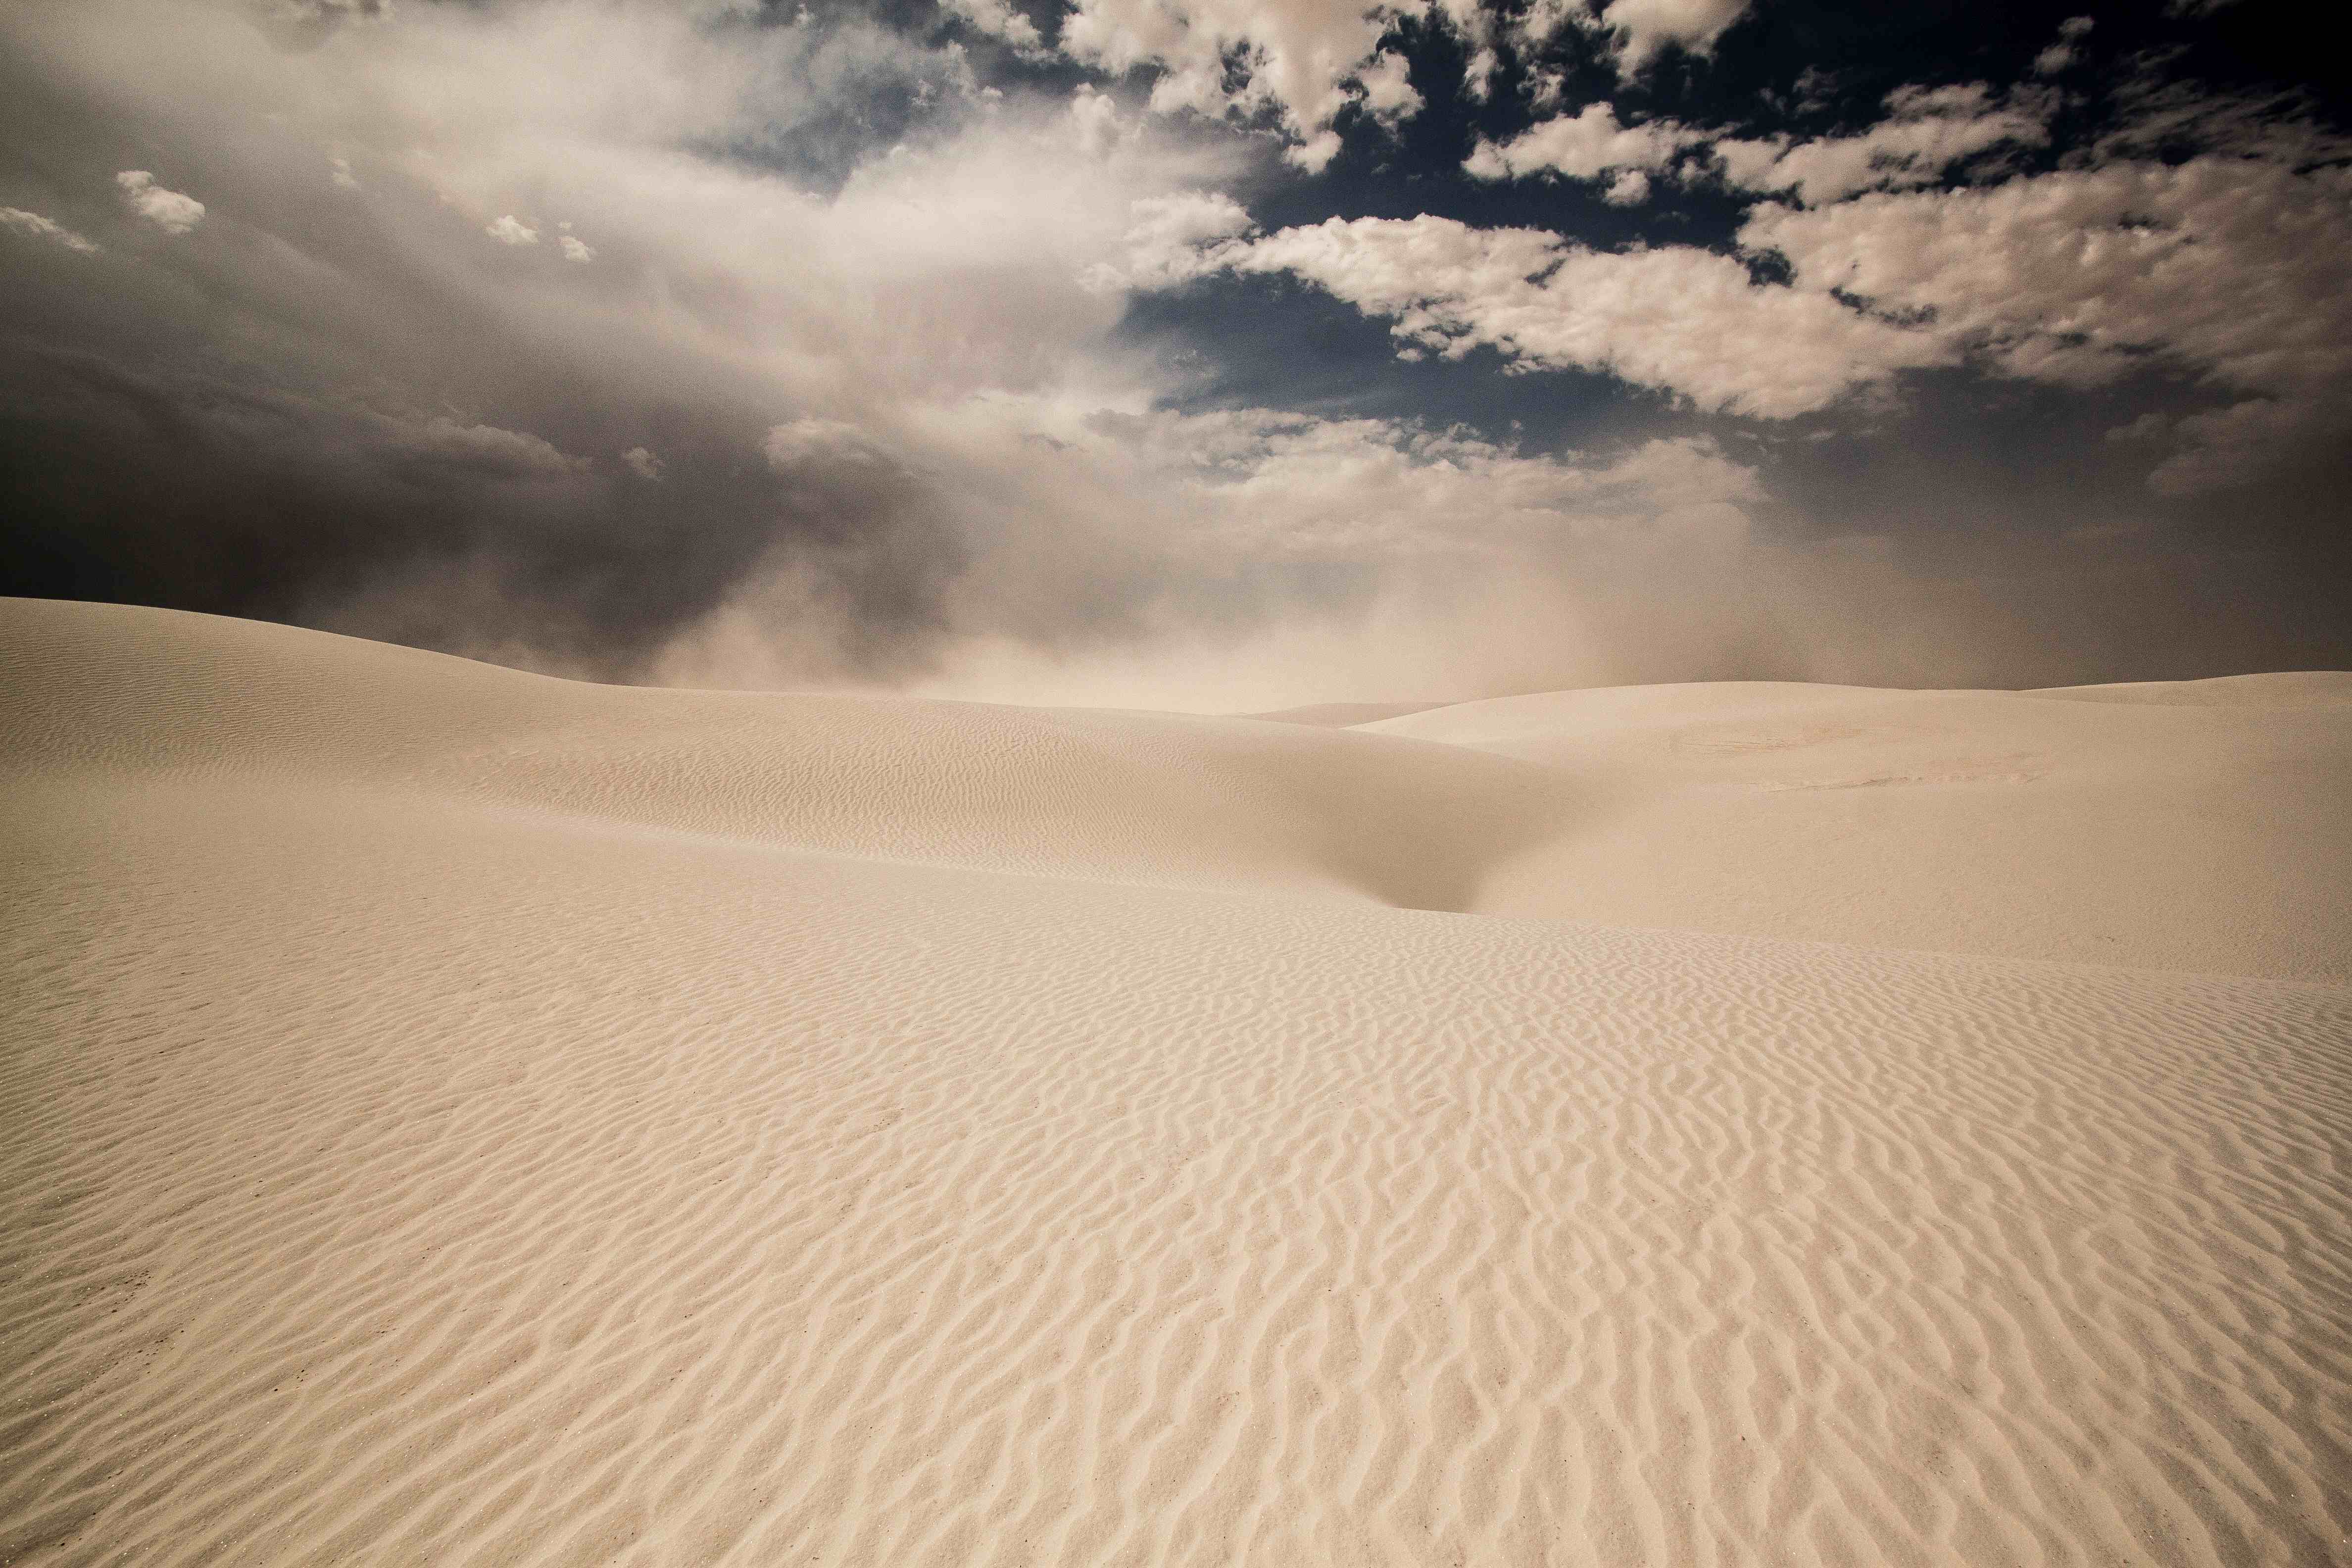 A sandstorm crests the dunes in White Sand National Monument, New Mexico